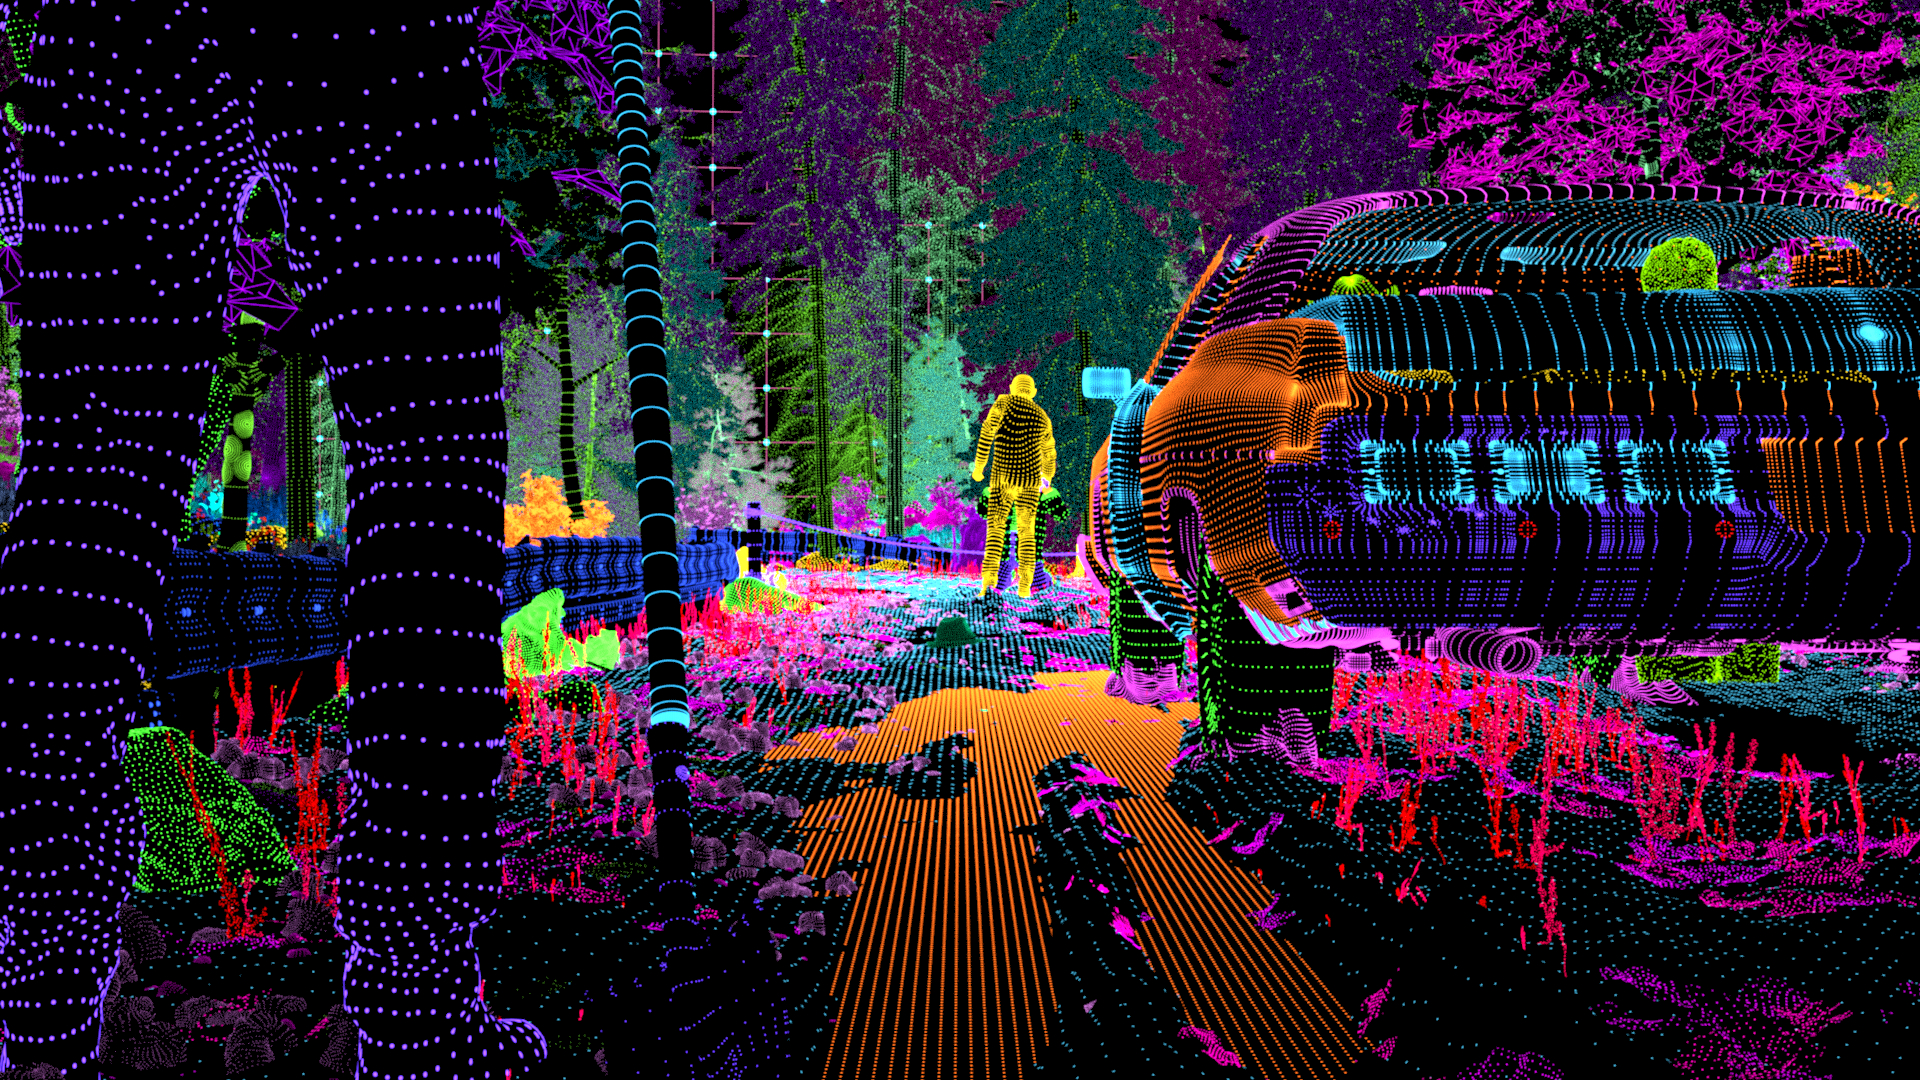 IAMSTATIC, FITC conference titles, CoronaWire render